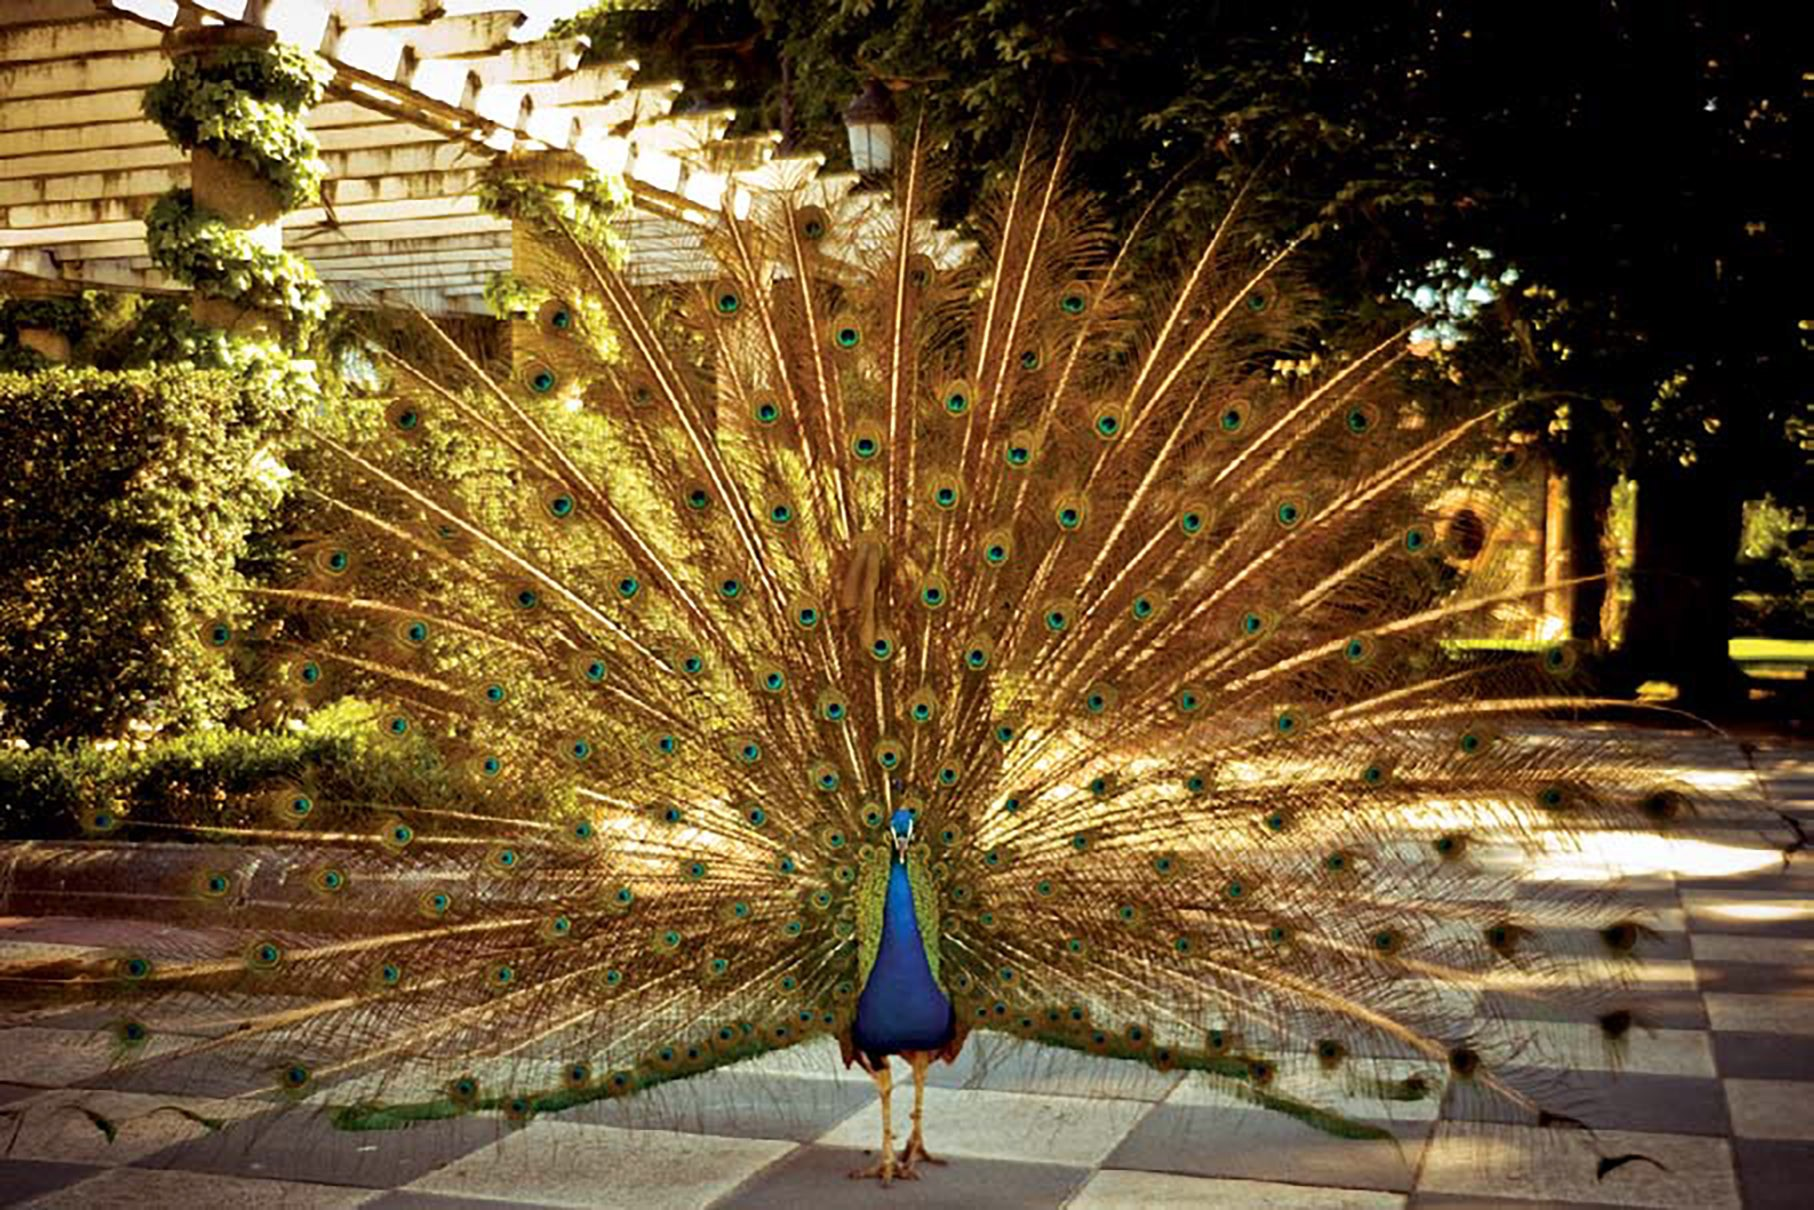 A peacock poses in Cecilio Rodriguez Garden, Madrid, Spain. ISO 100; 1/80 sec.; 50mm